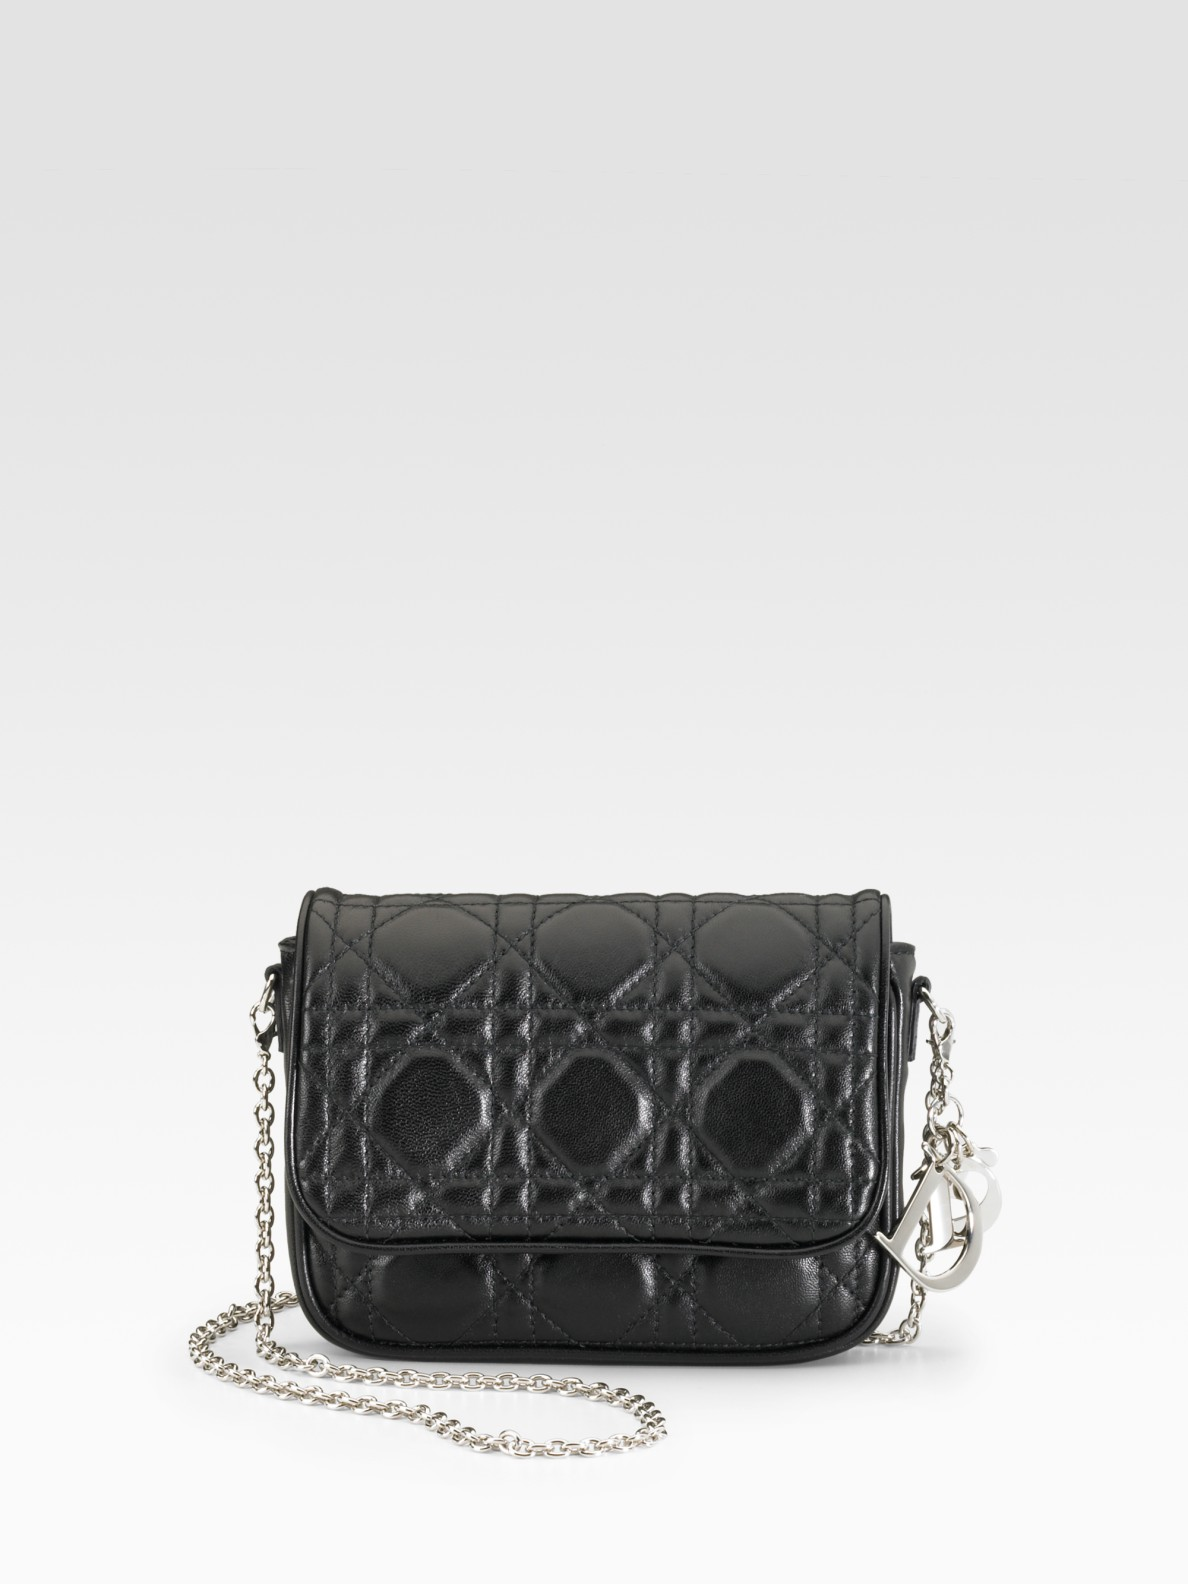 Lyst - Dior Lady Mini Shoulder Bag in Black 566f2e5028